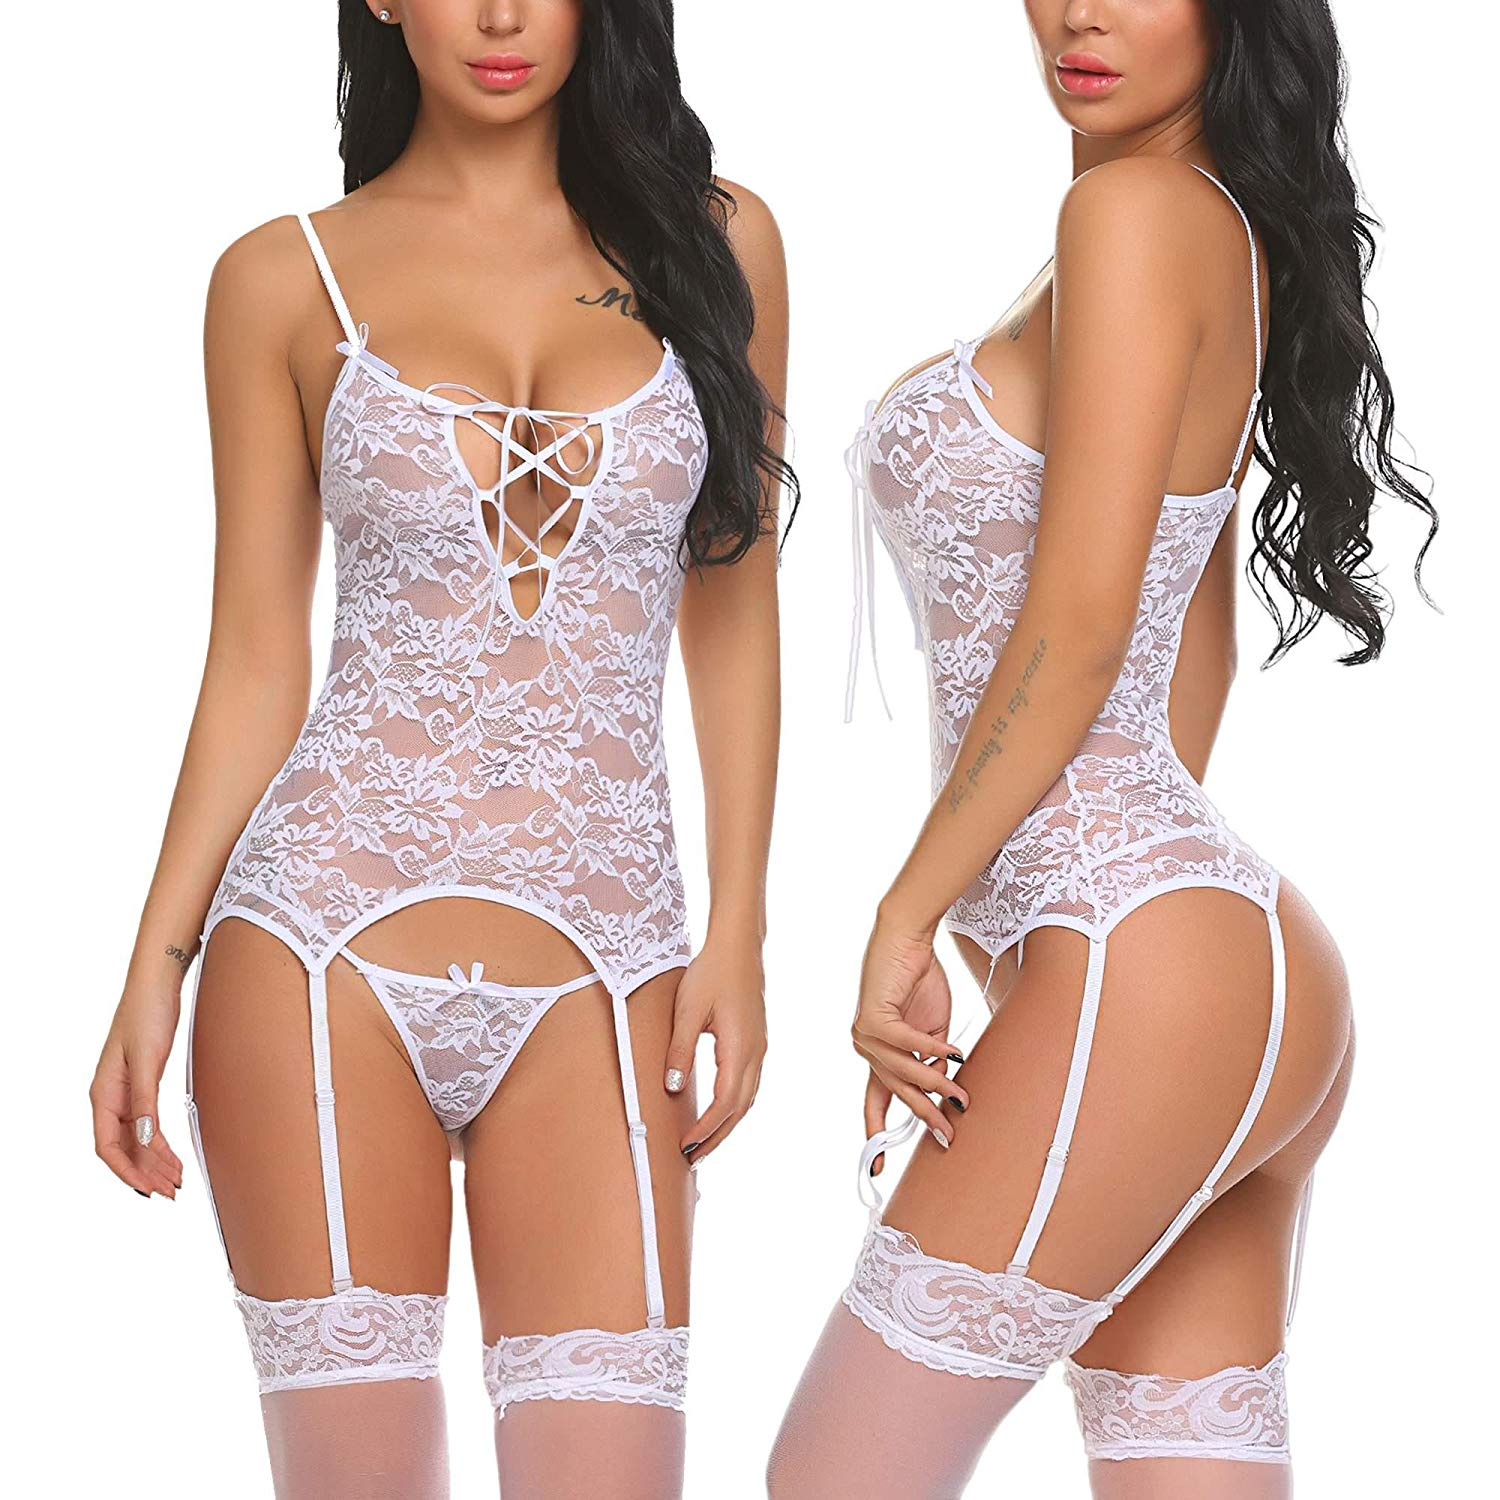 f0399a47a Get Quotations · Legros Babydoll Lingerie Womens Floral Lace Bustier Sets  Mini Teddy Sleepwear S-XXL